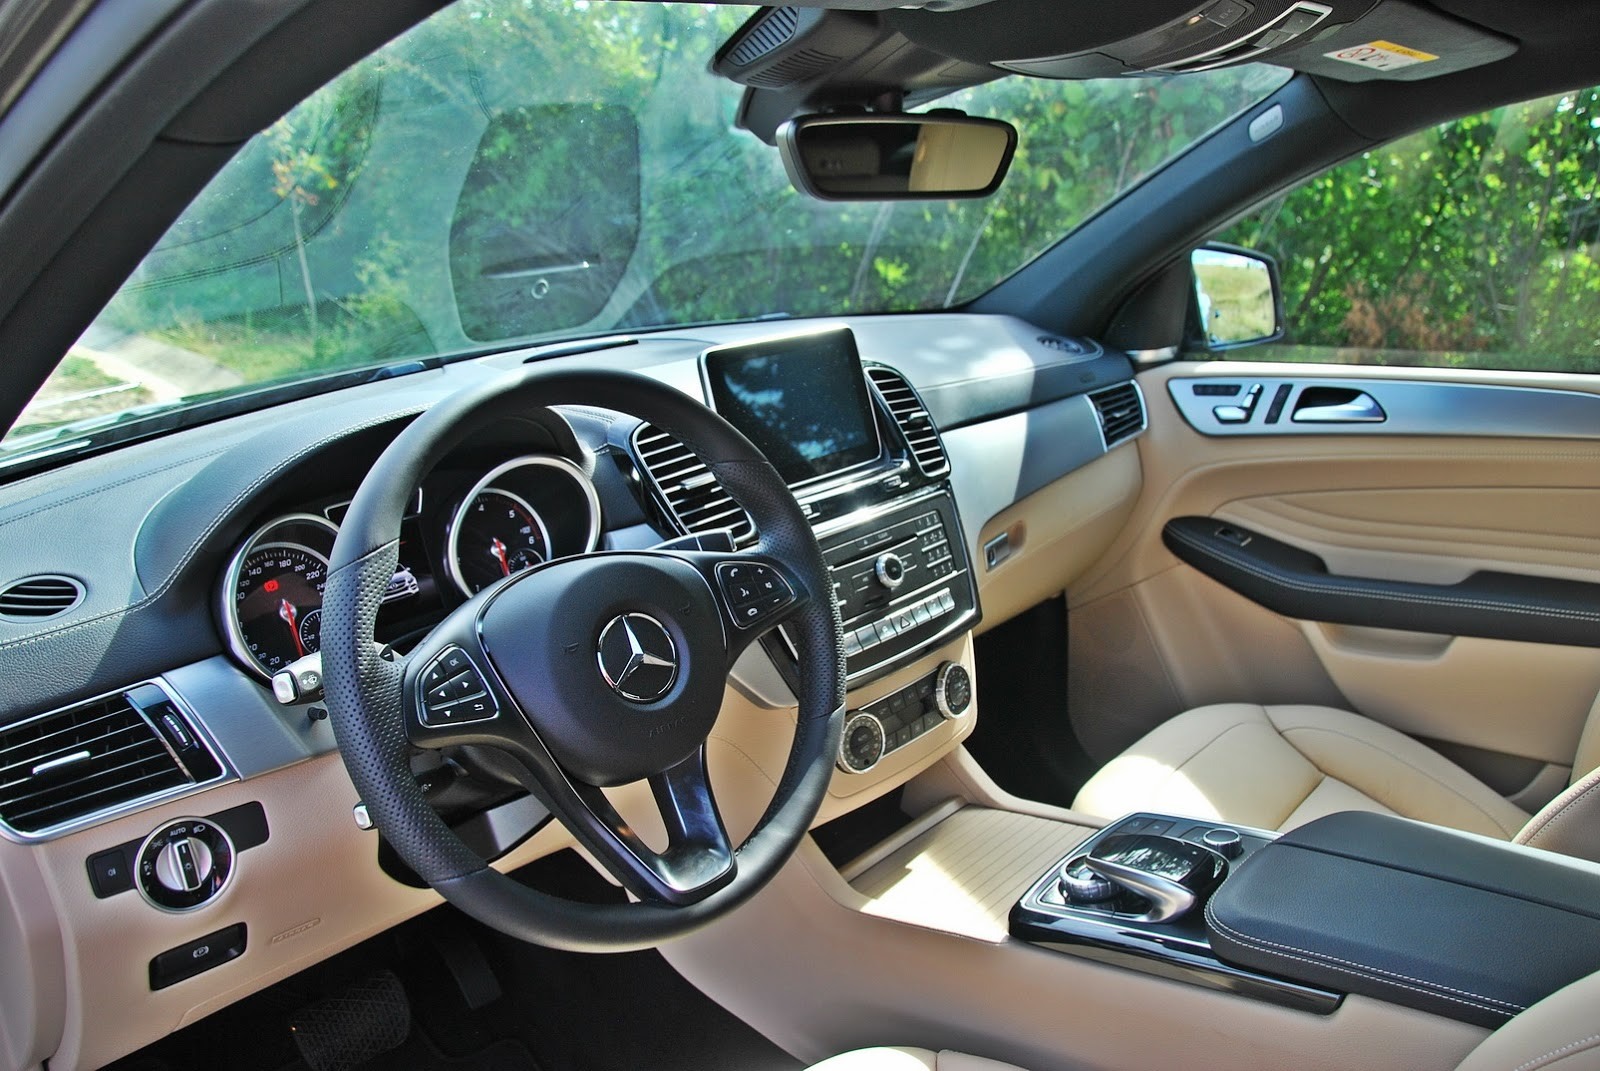 Mercedes-Benz GLE 350d Coupe